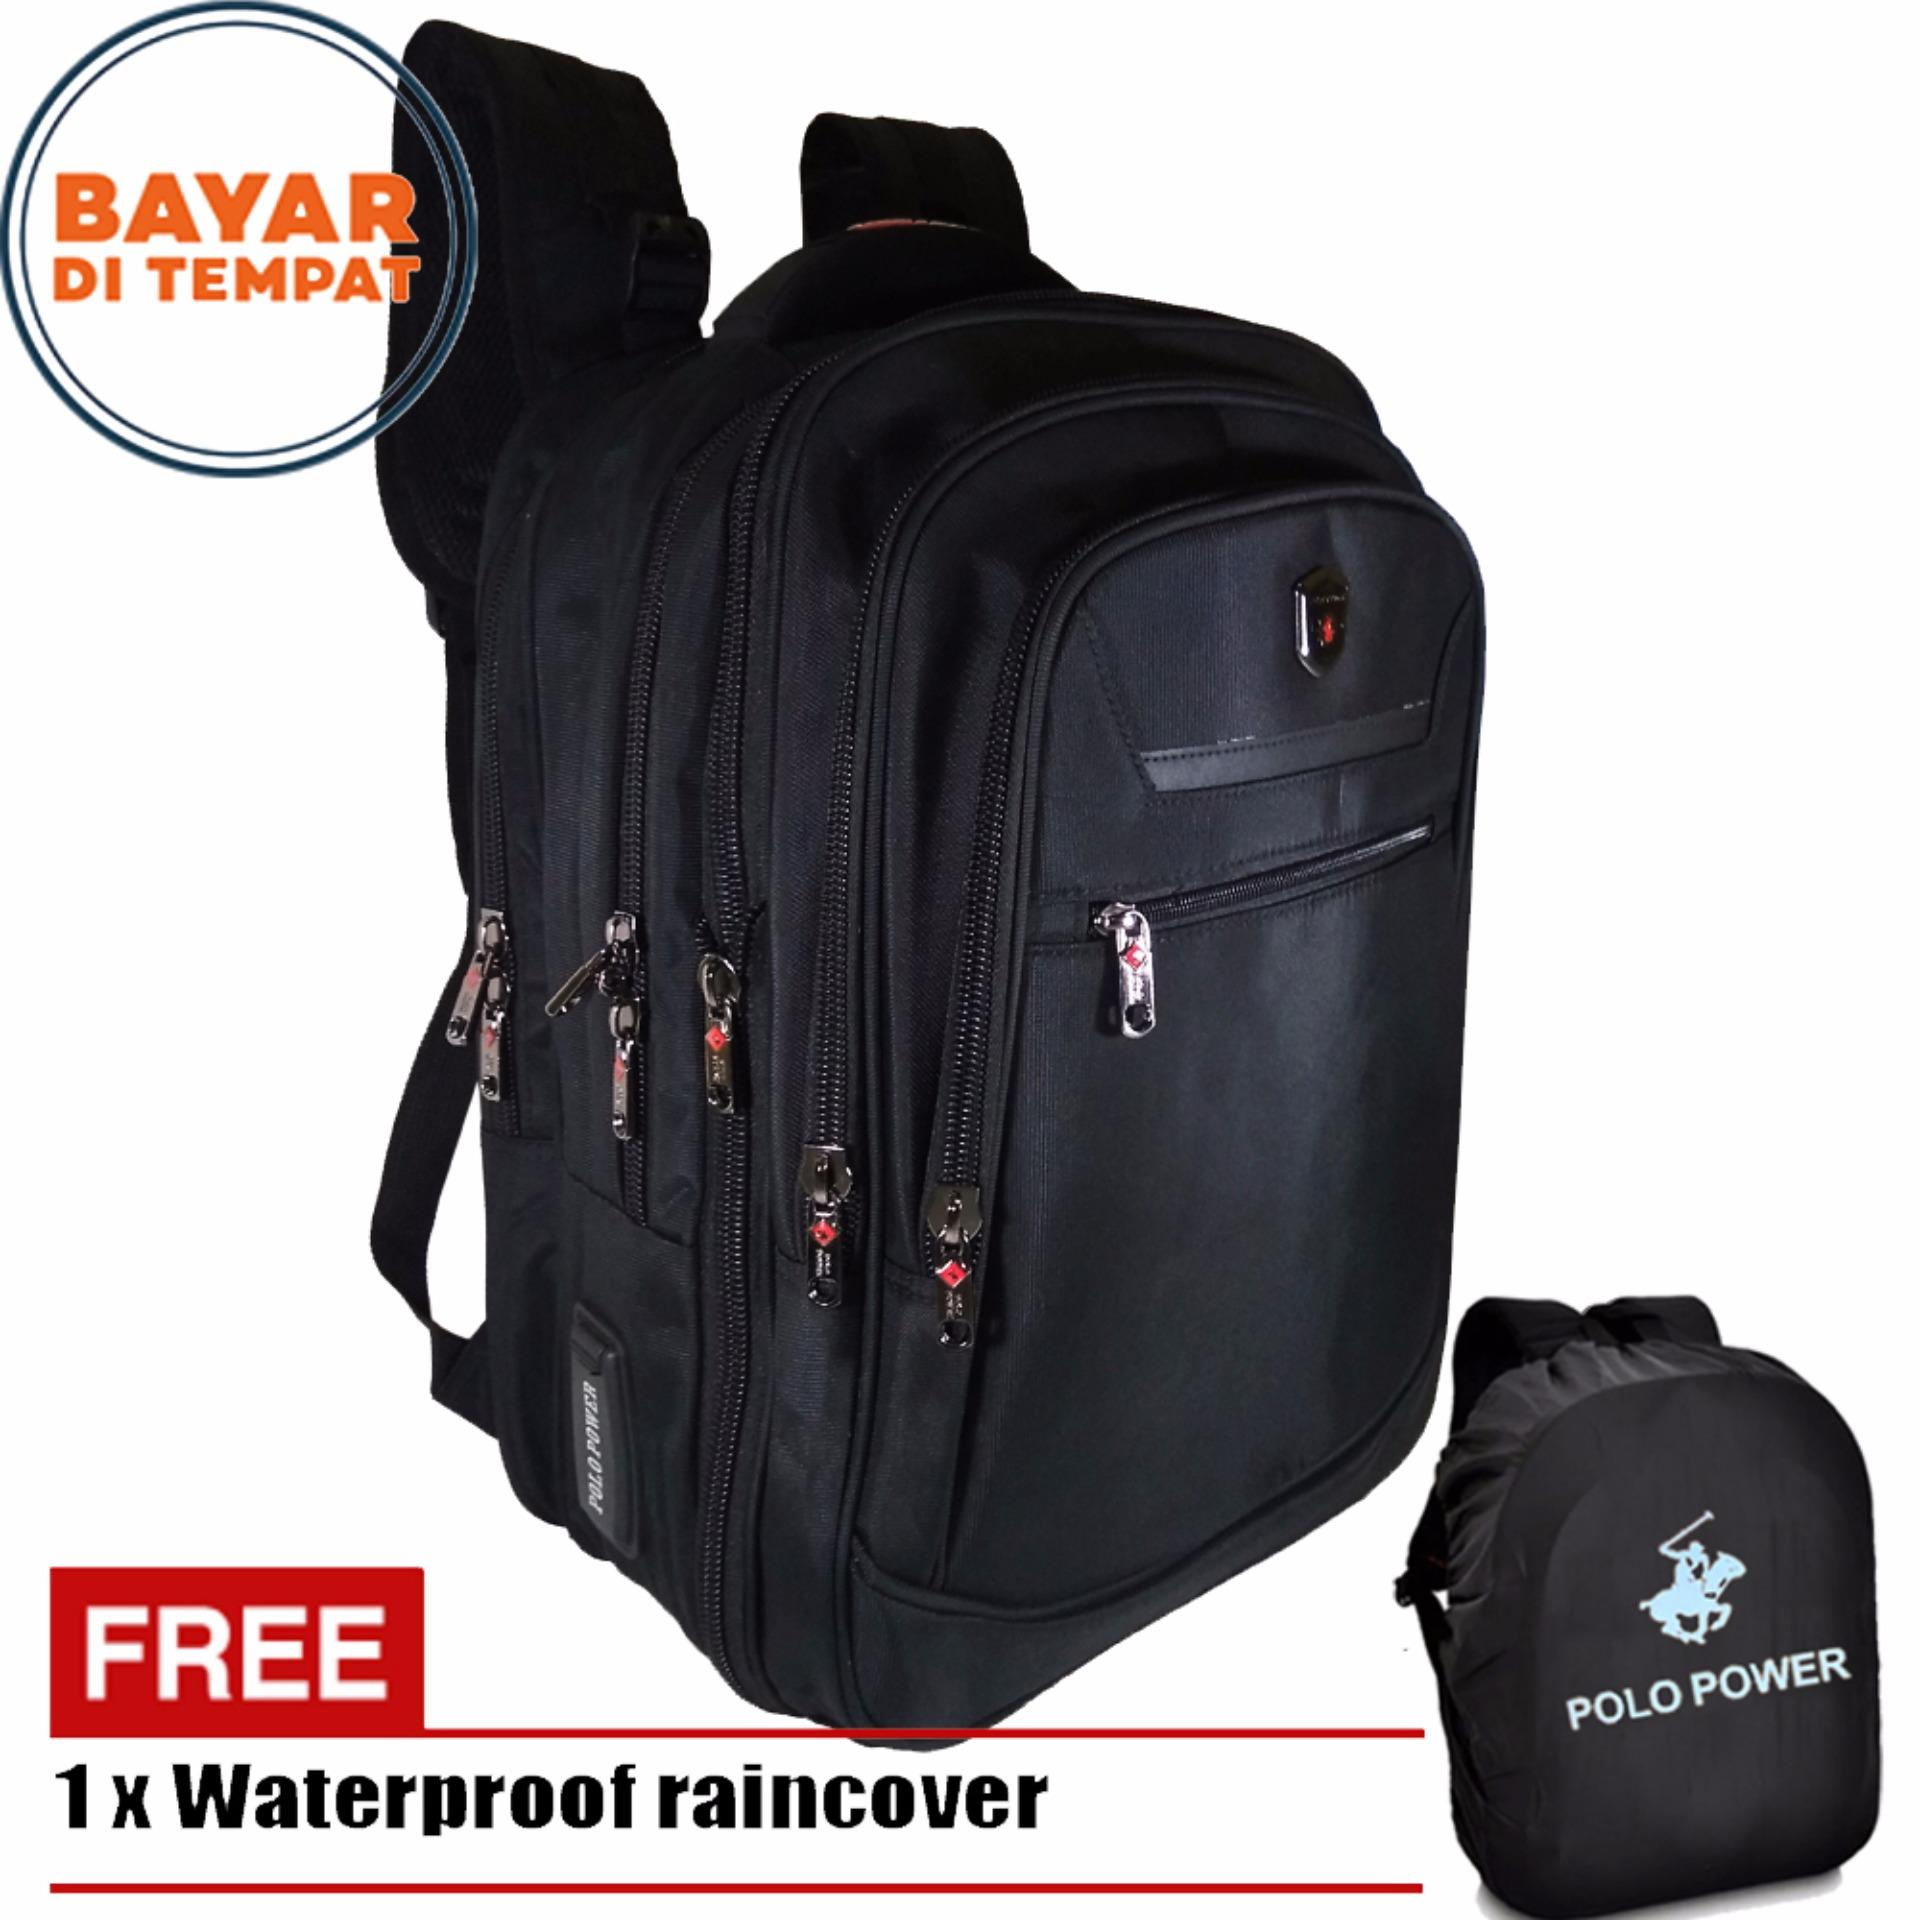 Beli Polo Power Tas Ransel Pria 18 Inchi Expandable 185003 Highest Spec Polo Backpack Import Original Black Raincover Polo Power Online